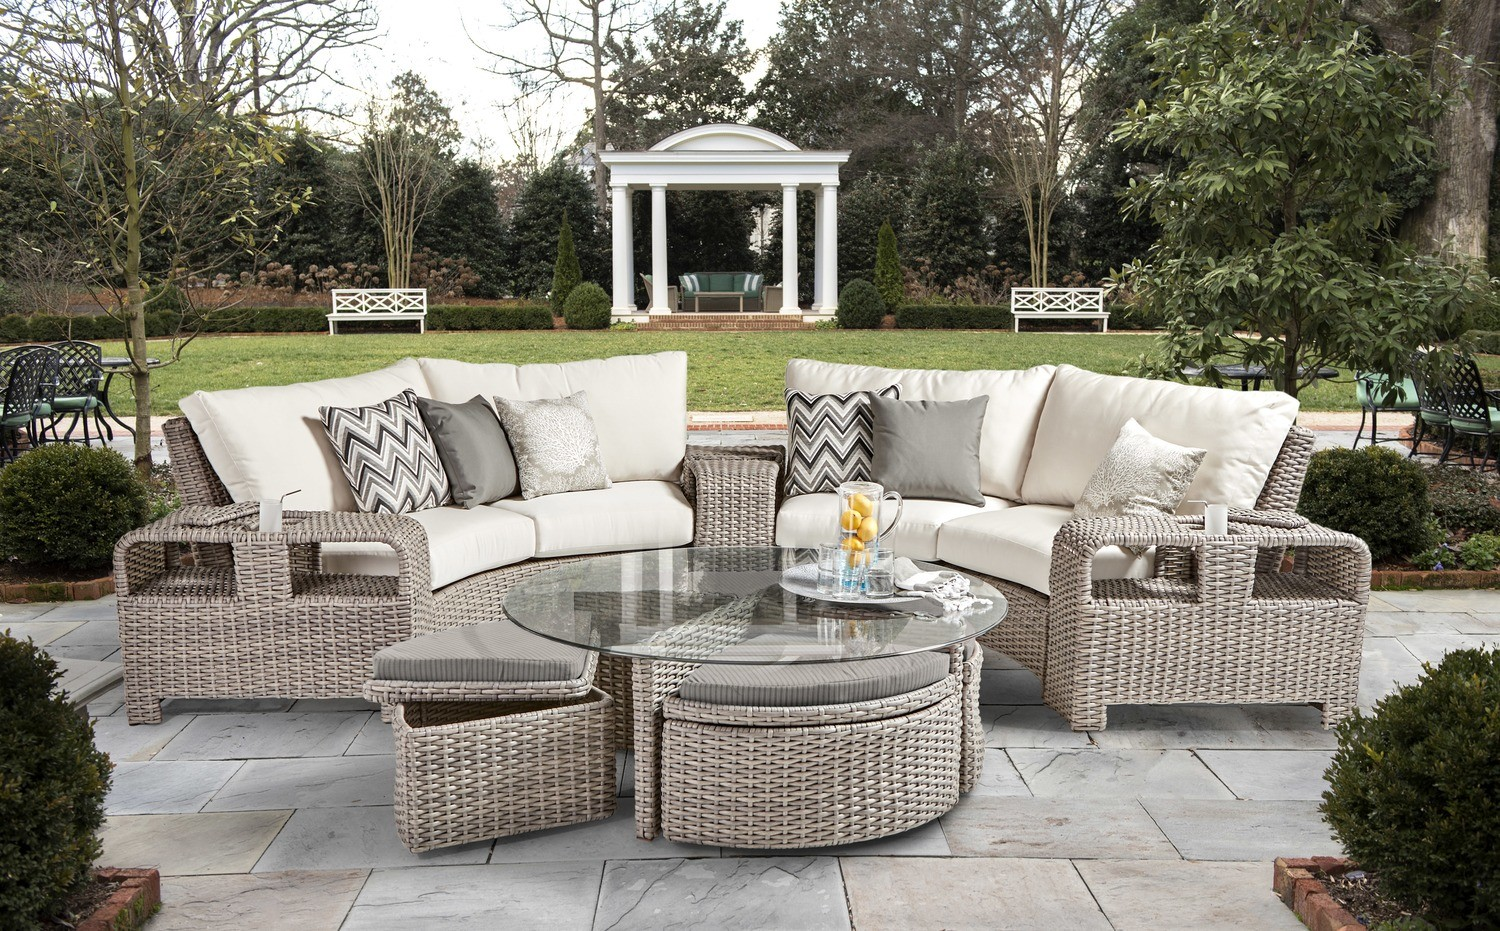 St. Tropez OUTDOOR CURVED SECTIONAL Stone